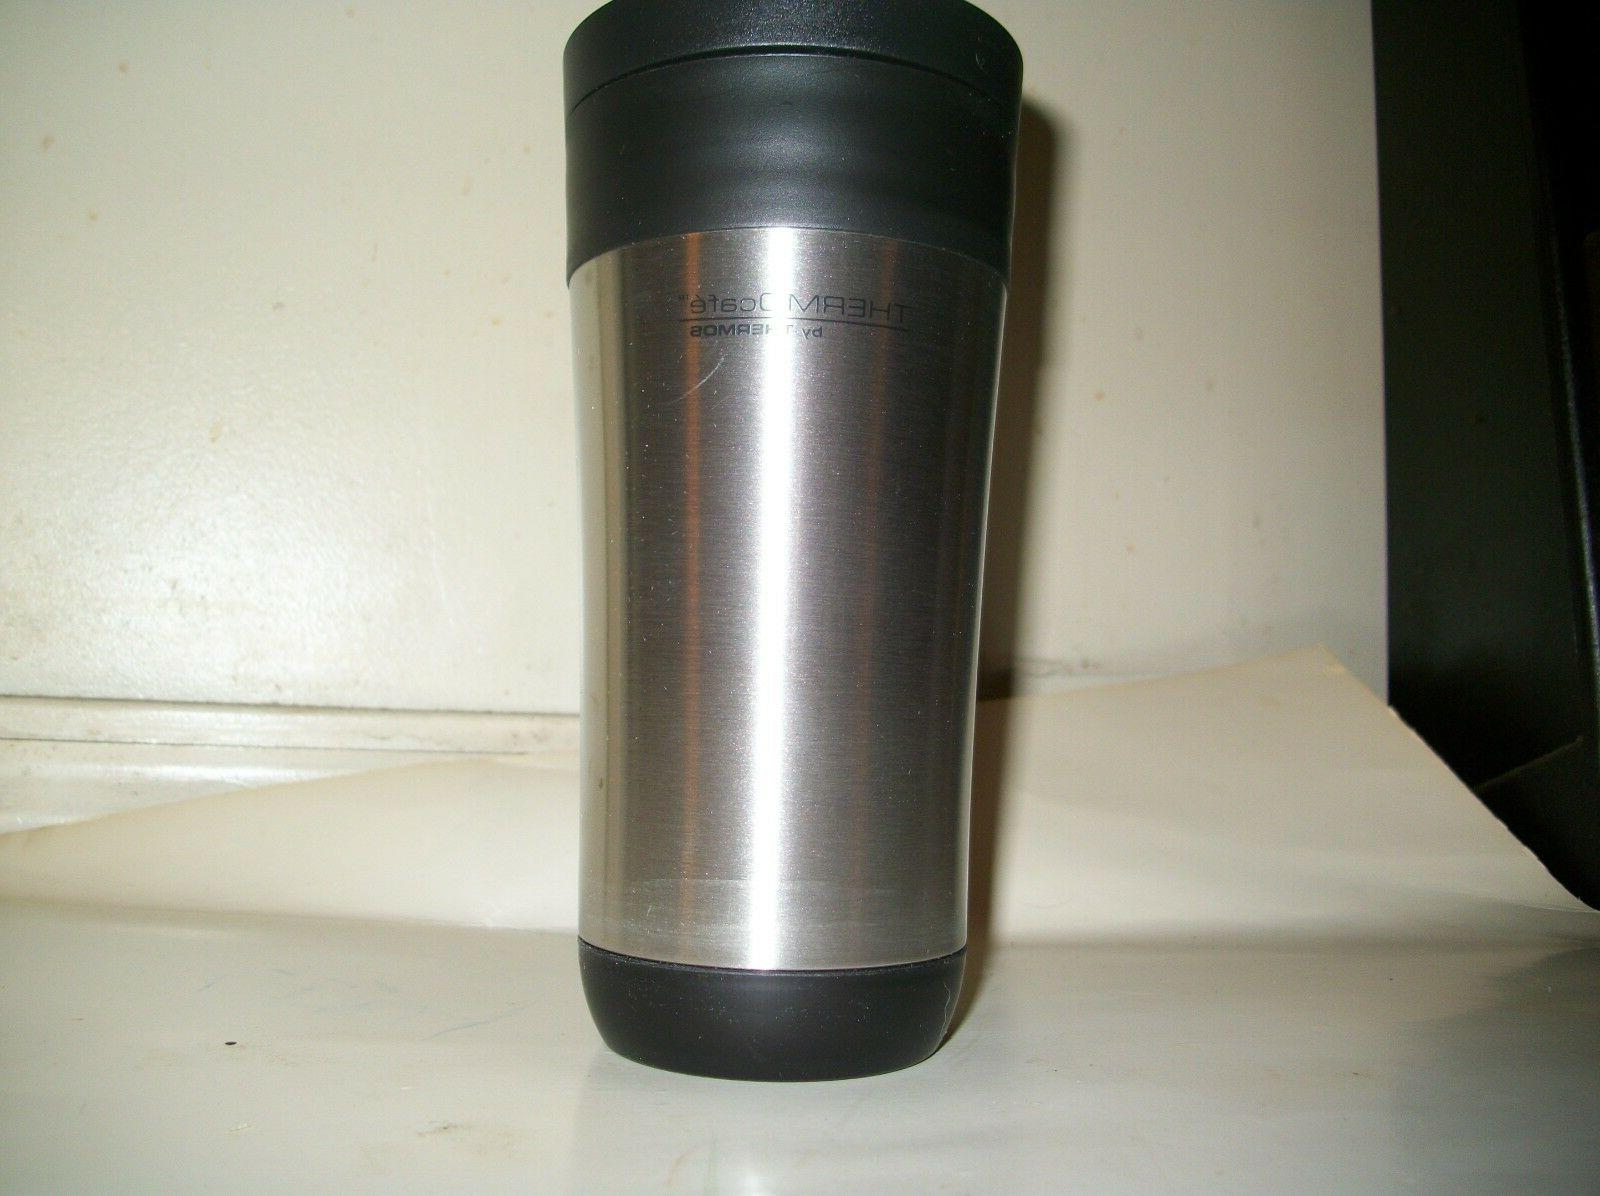 16 ounce thermocafe hot or cold travel